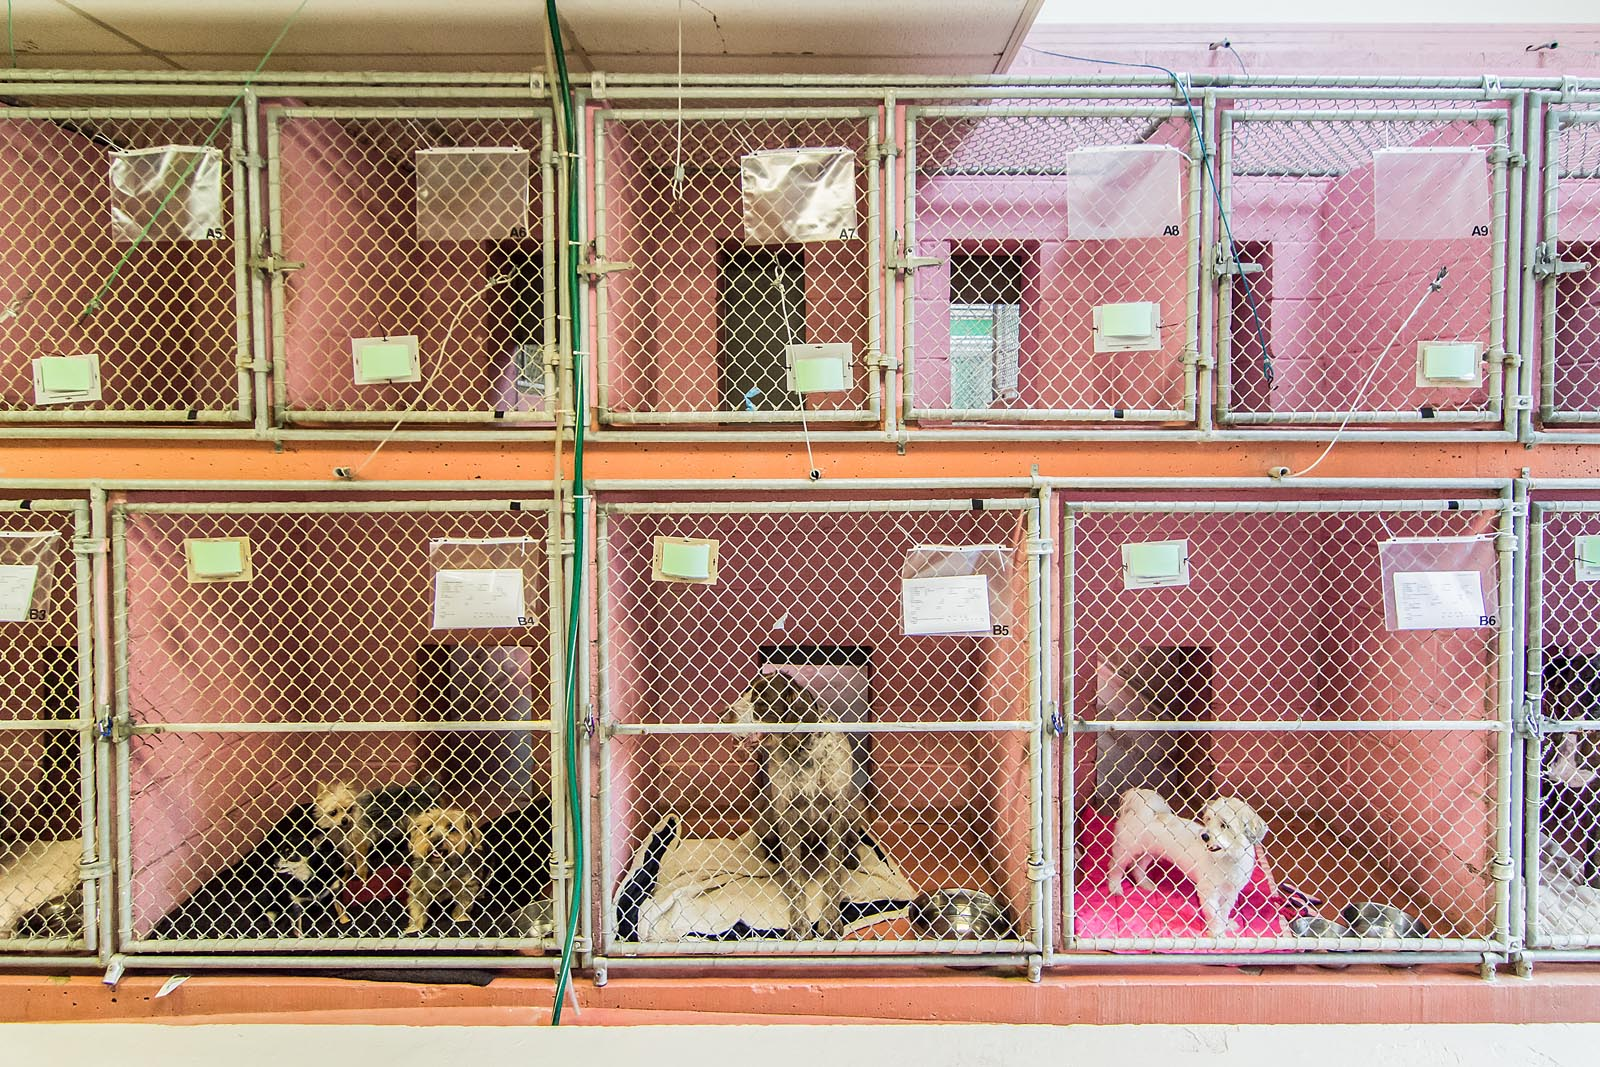 Front of Kennel Run at The Animal Hospital of Roxbury